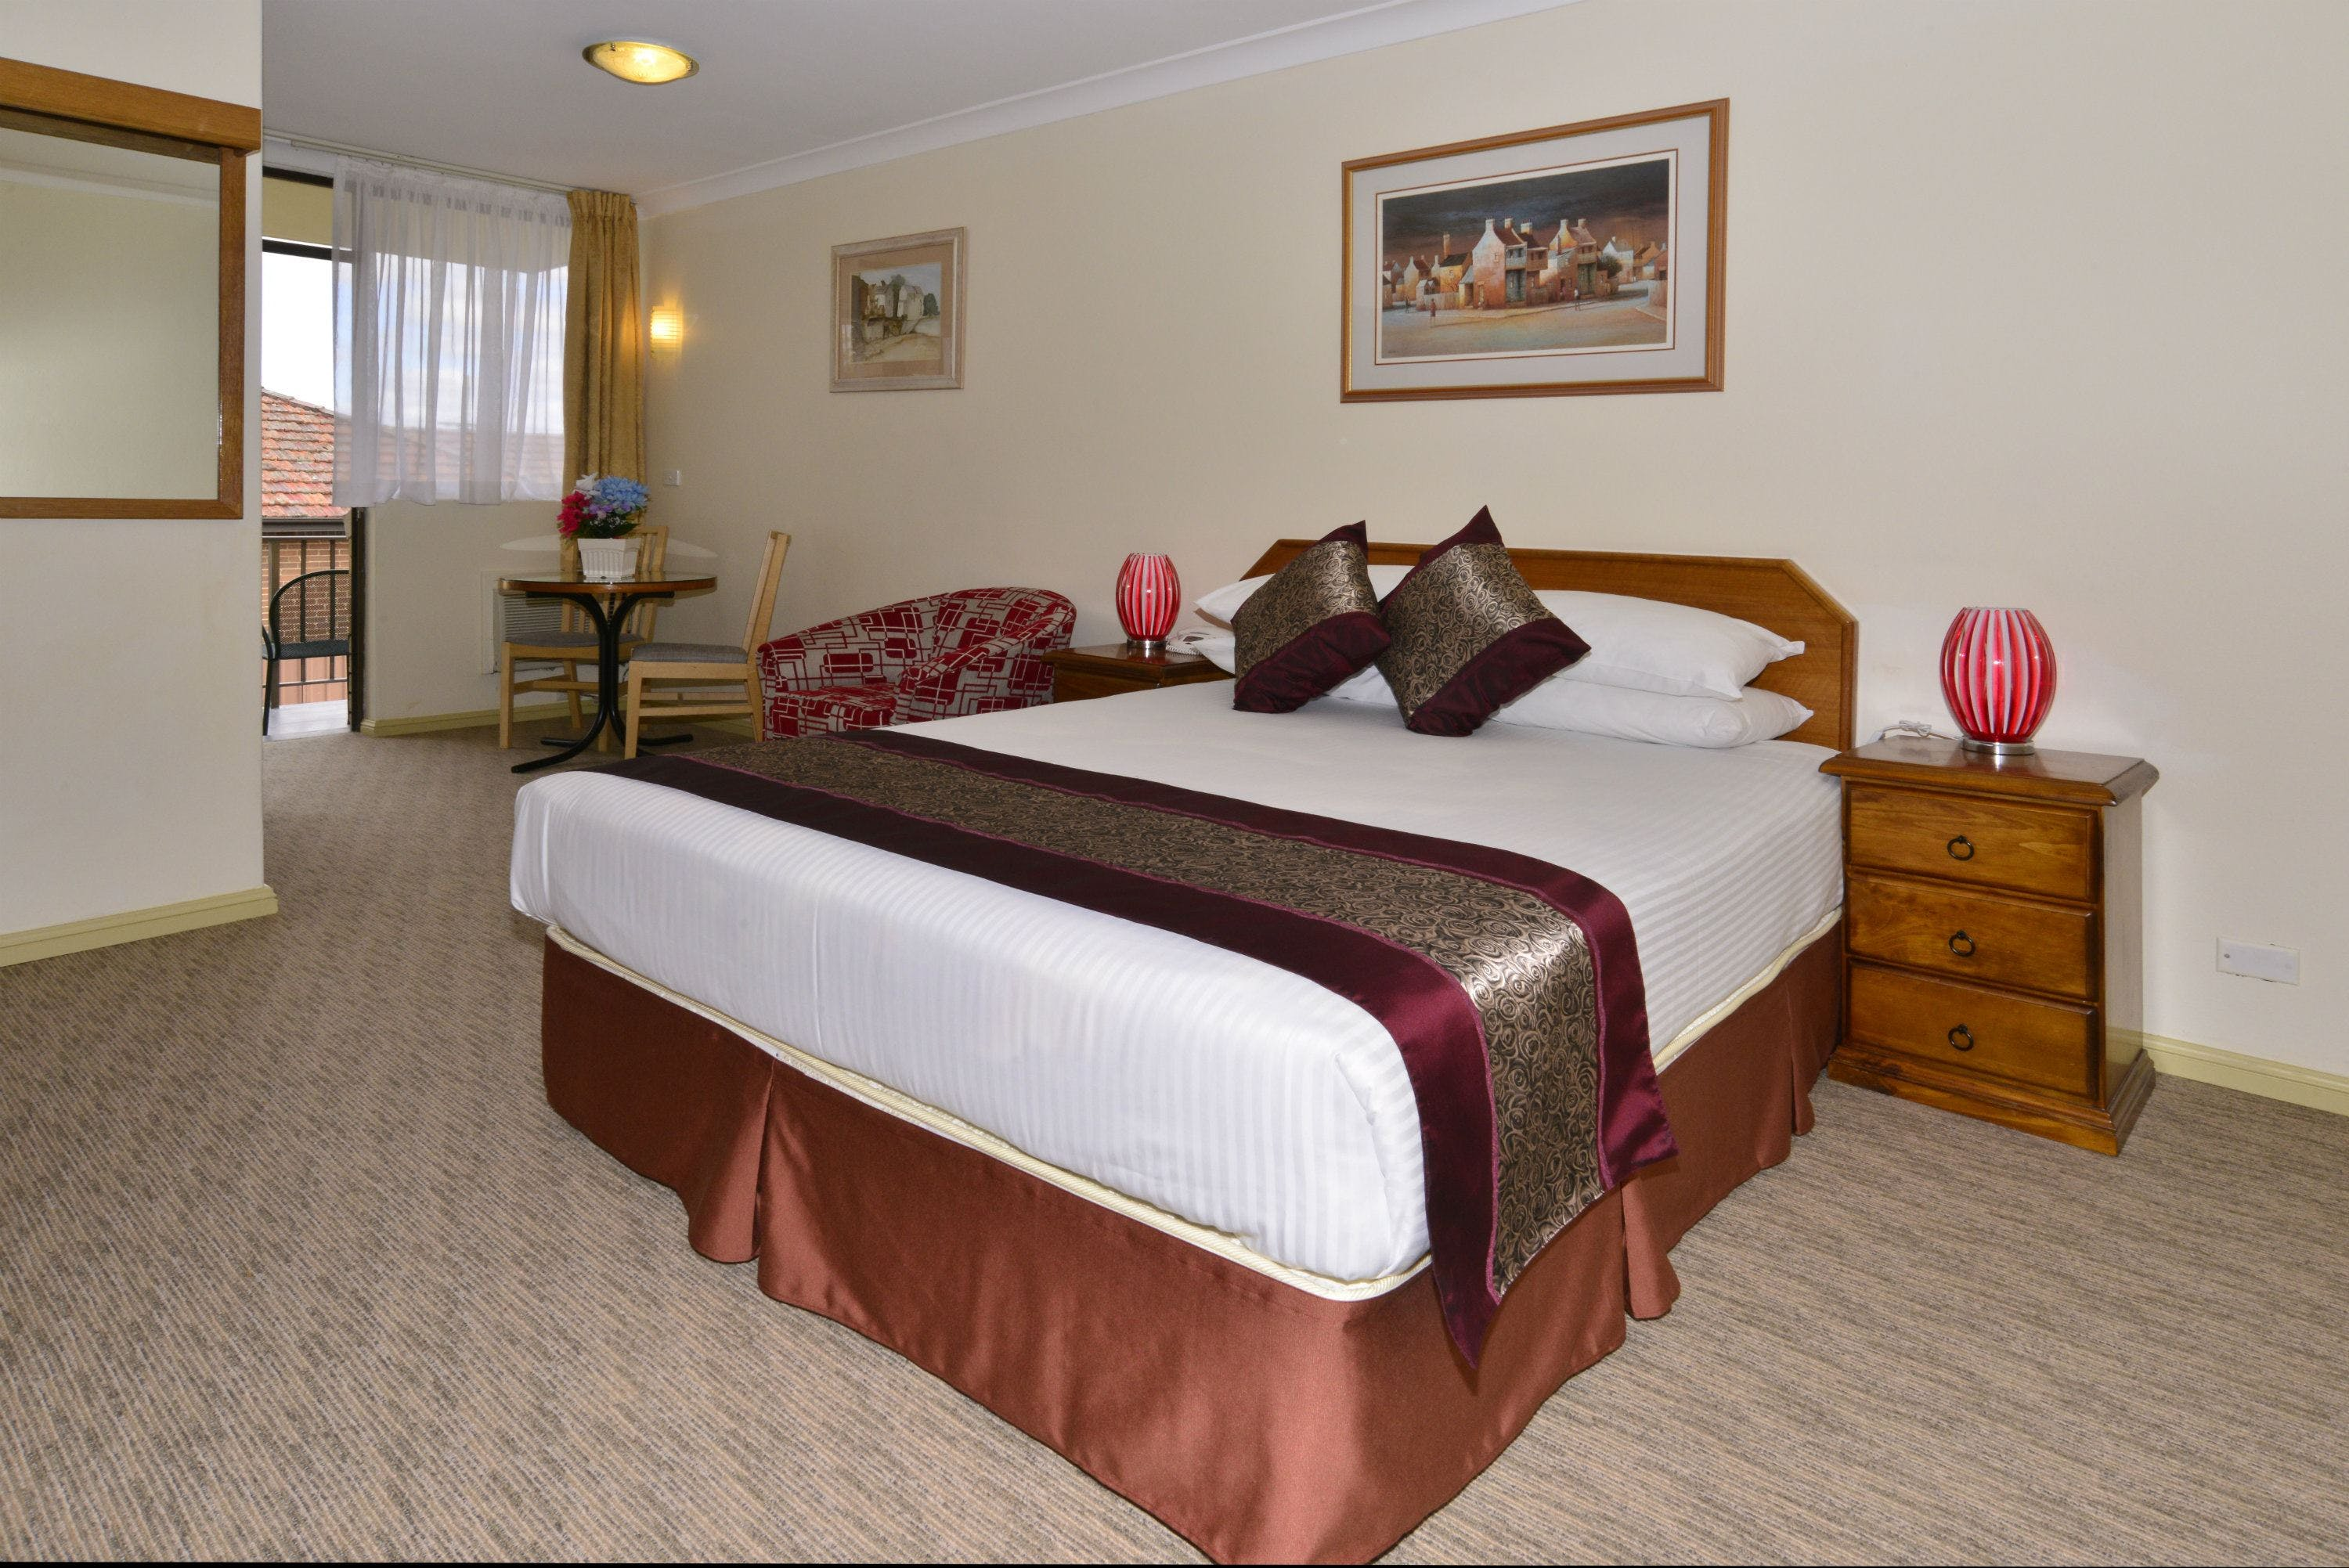 Metro Inn Ryde - Coogee Beach Accommodation